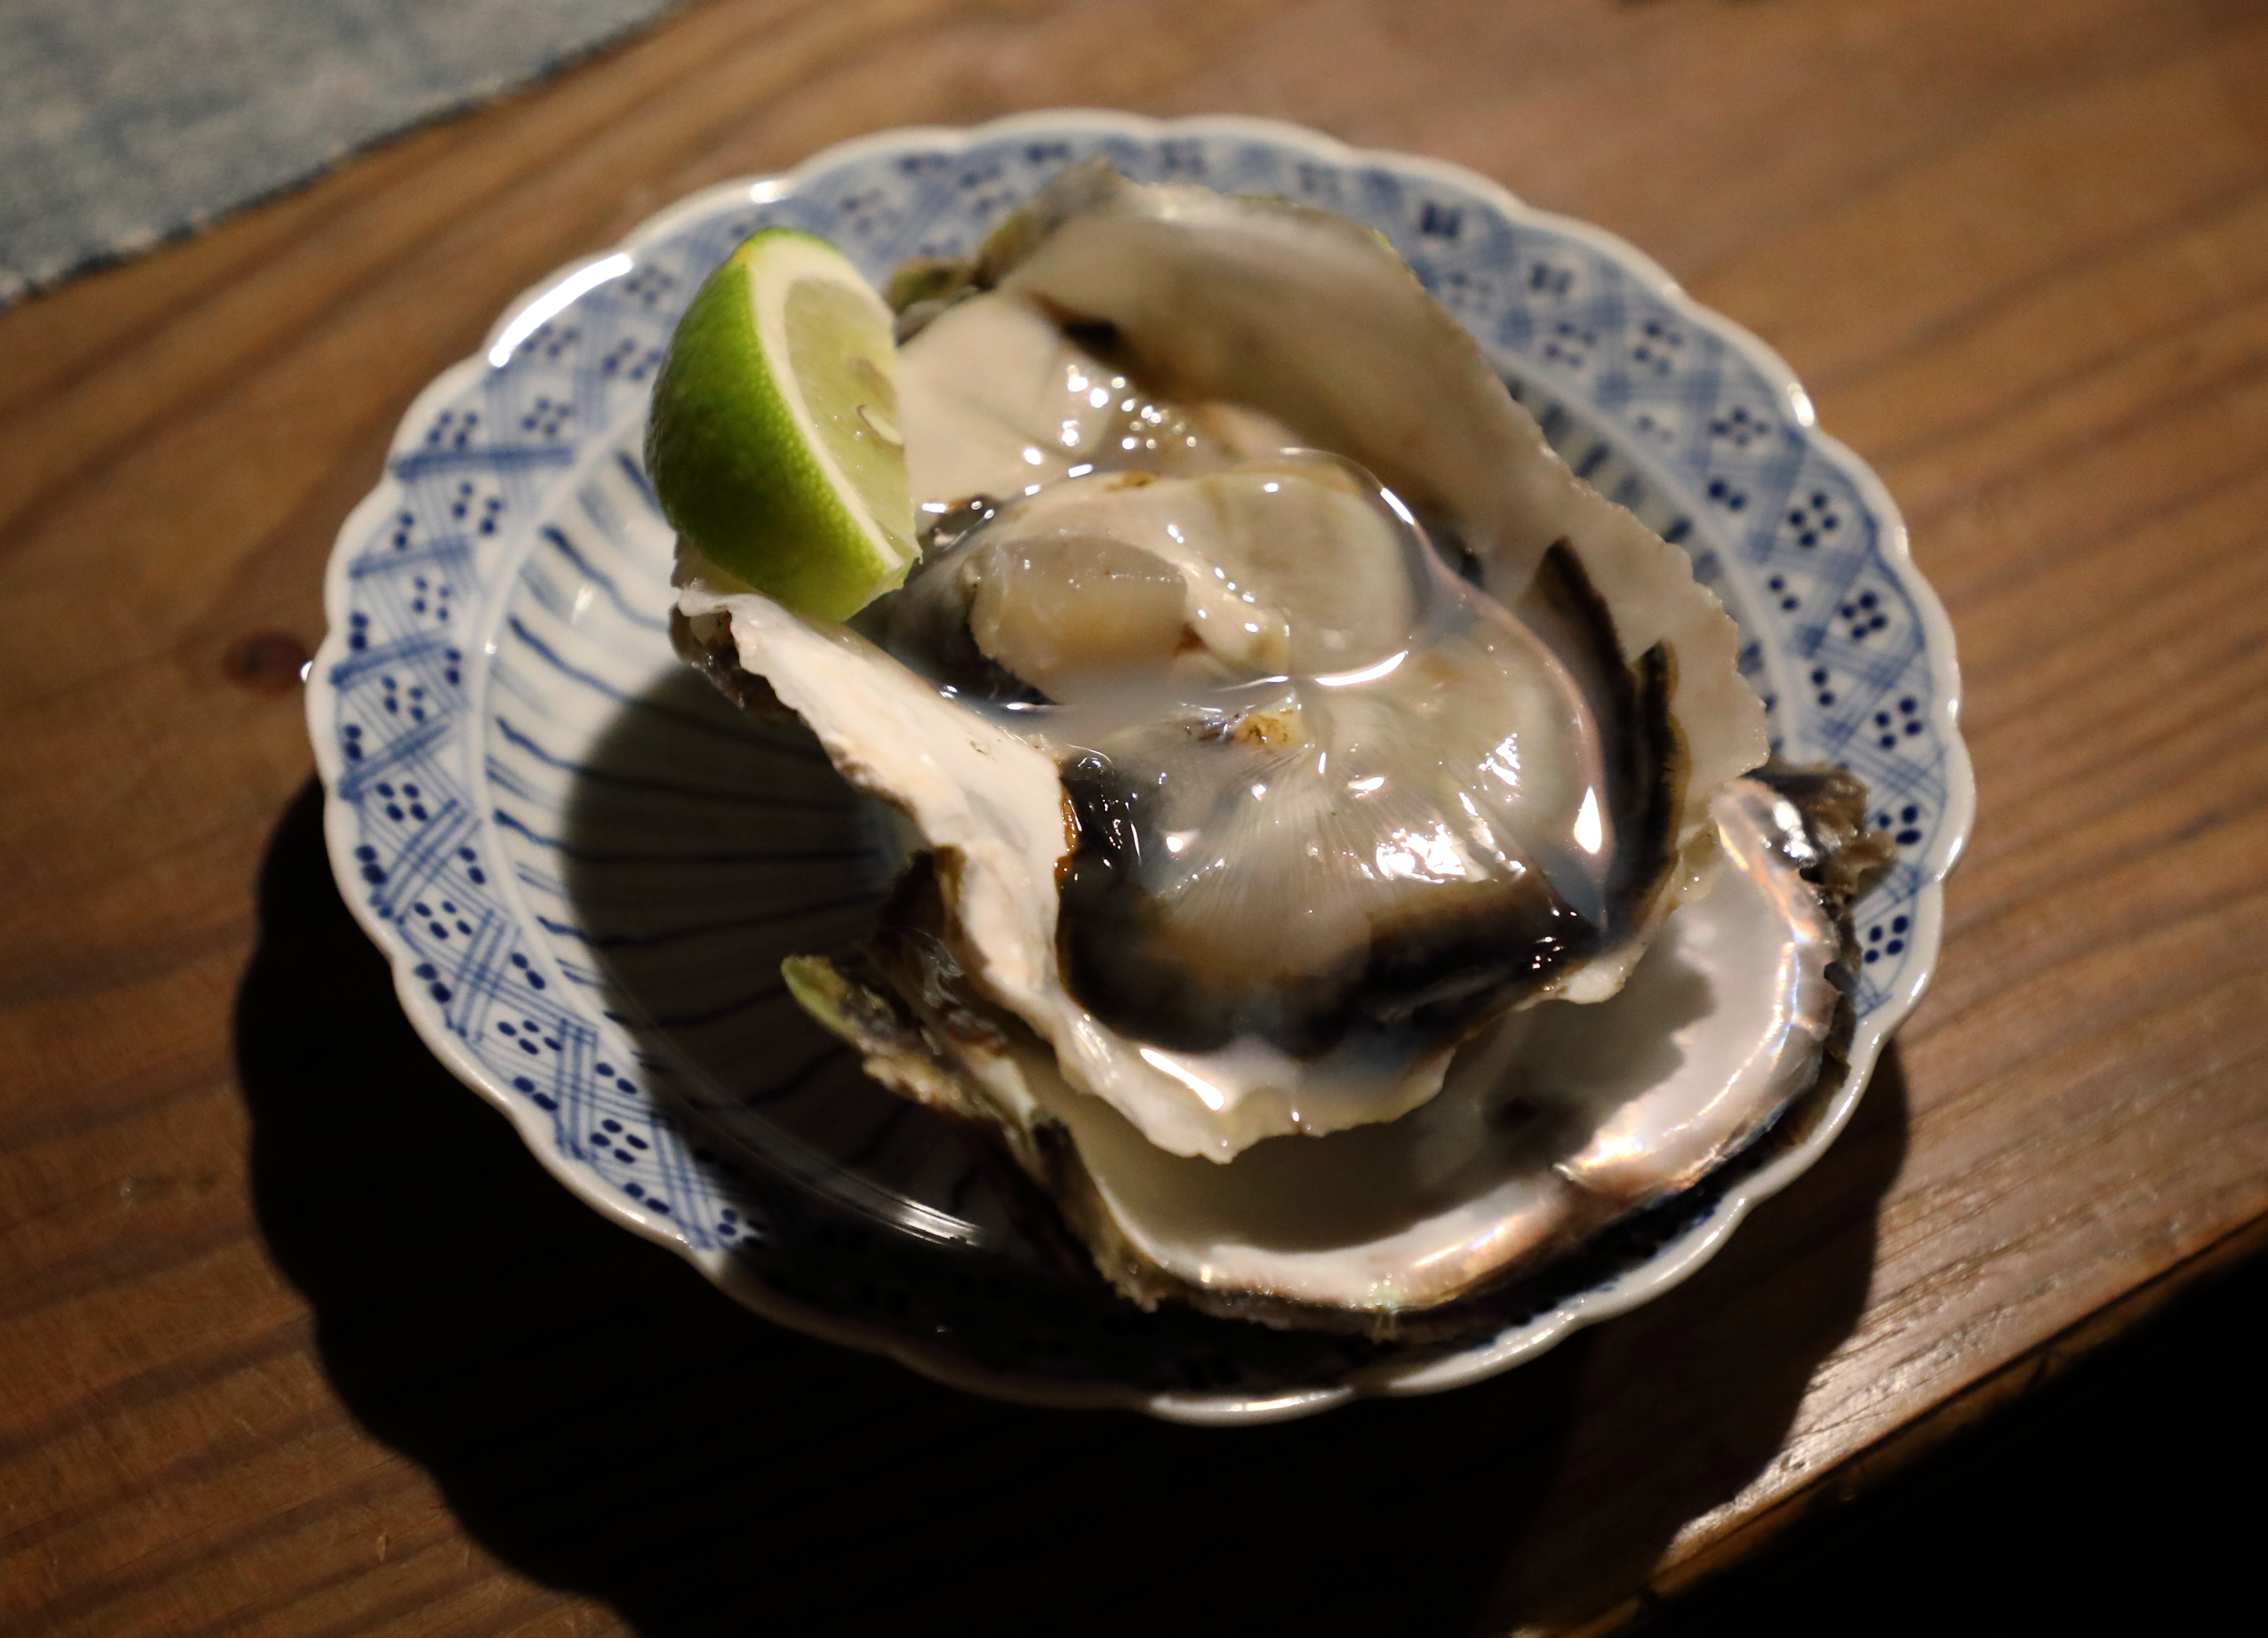 The color, fragrance, and mild acidity of  ao-lemon , or green lemon, is a perfect match for the rich yet delicate flavor of Japan's summer  iwagaki  rock oysters